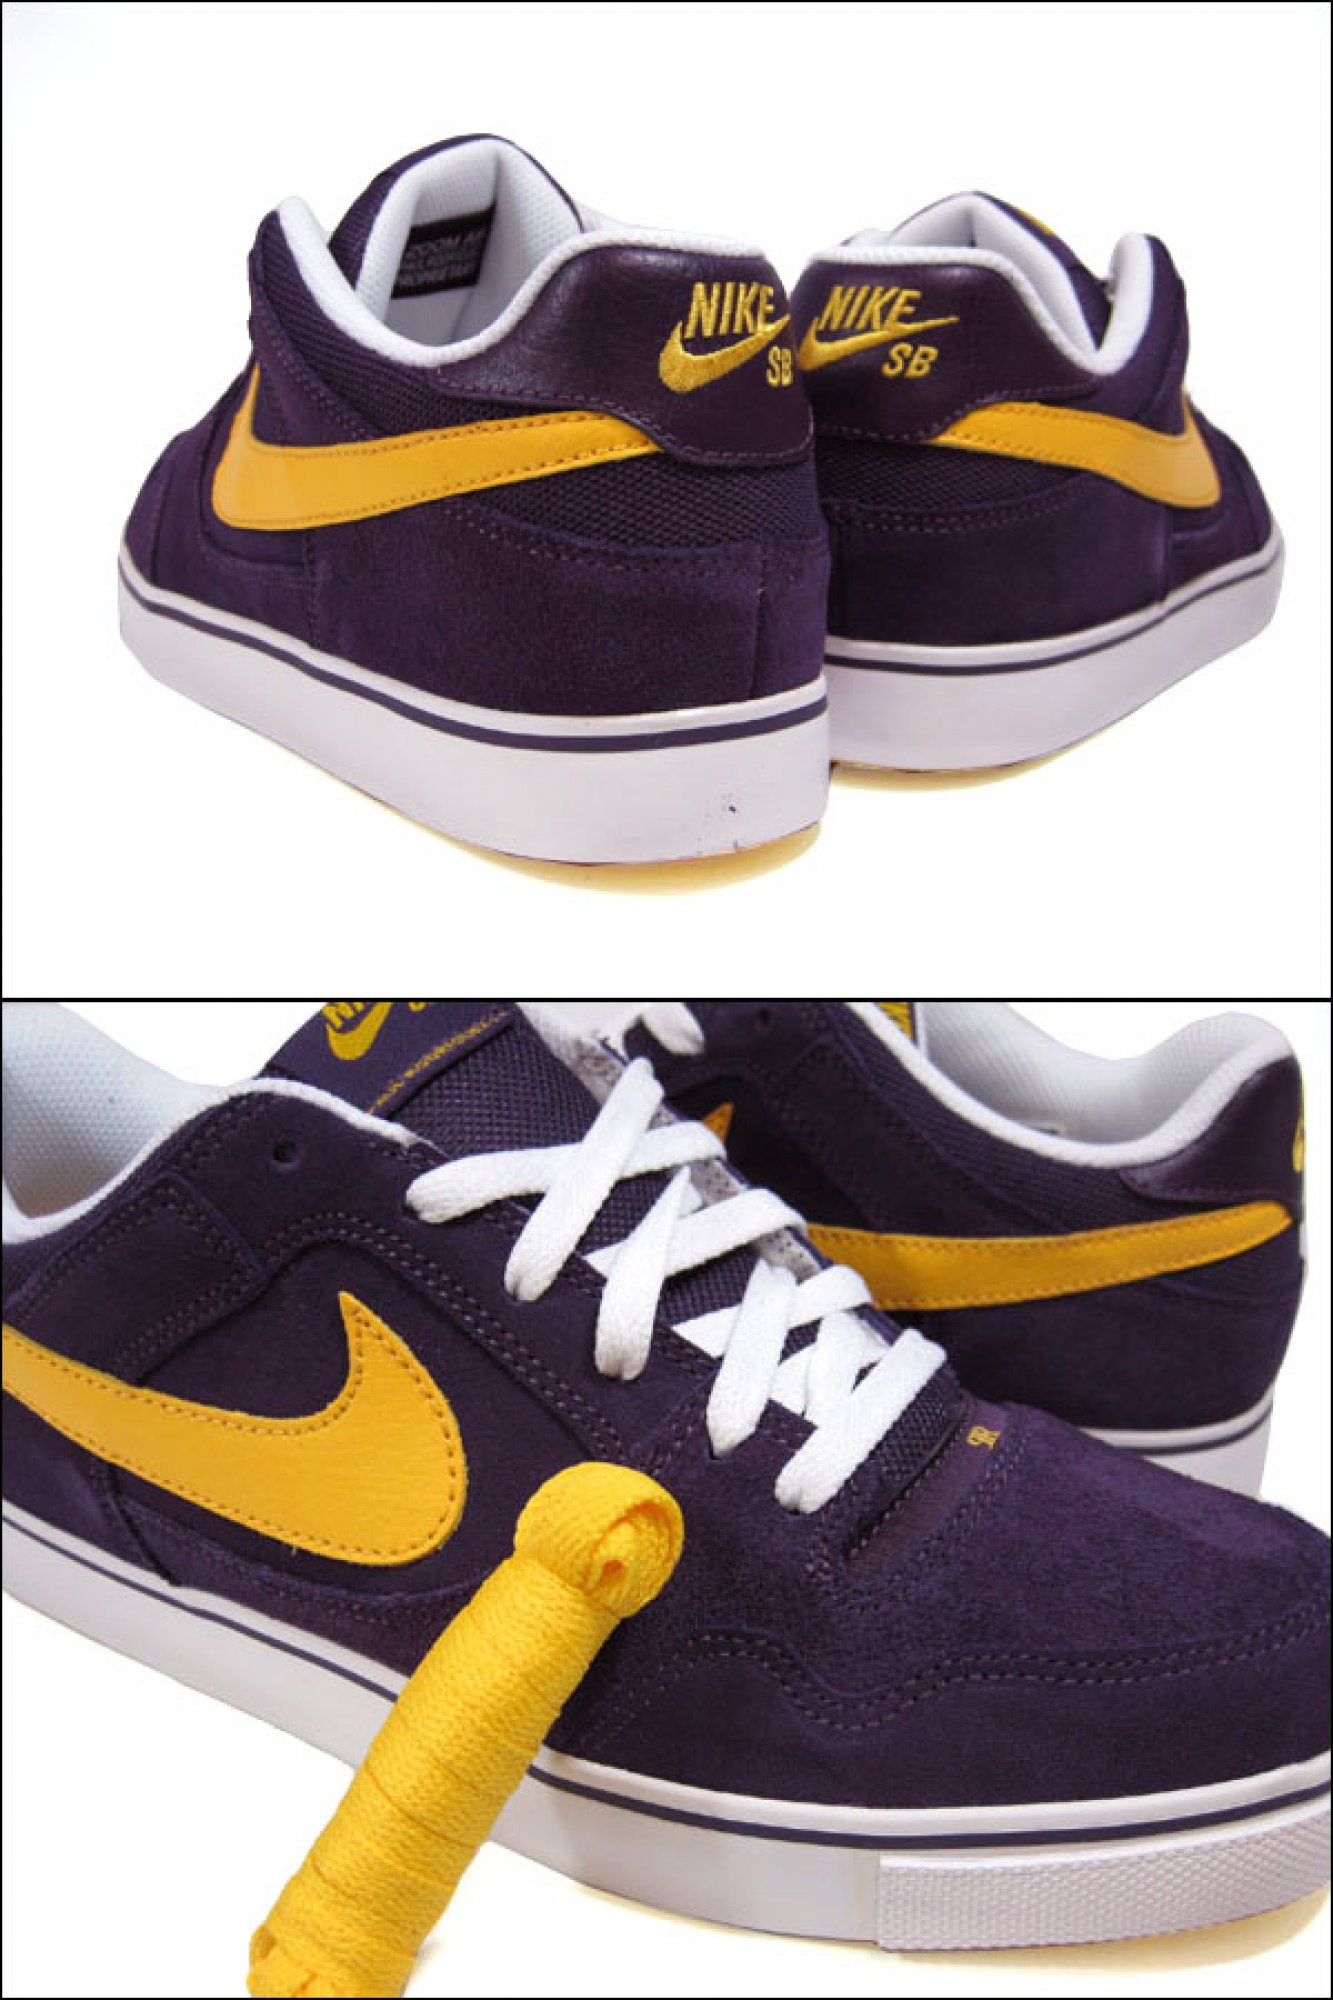 Nike Zoom P-Rod 2.5 Grand Purple/Varsity Maize